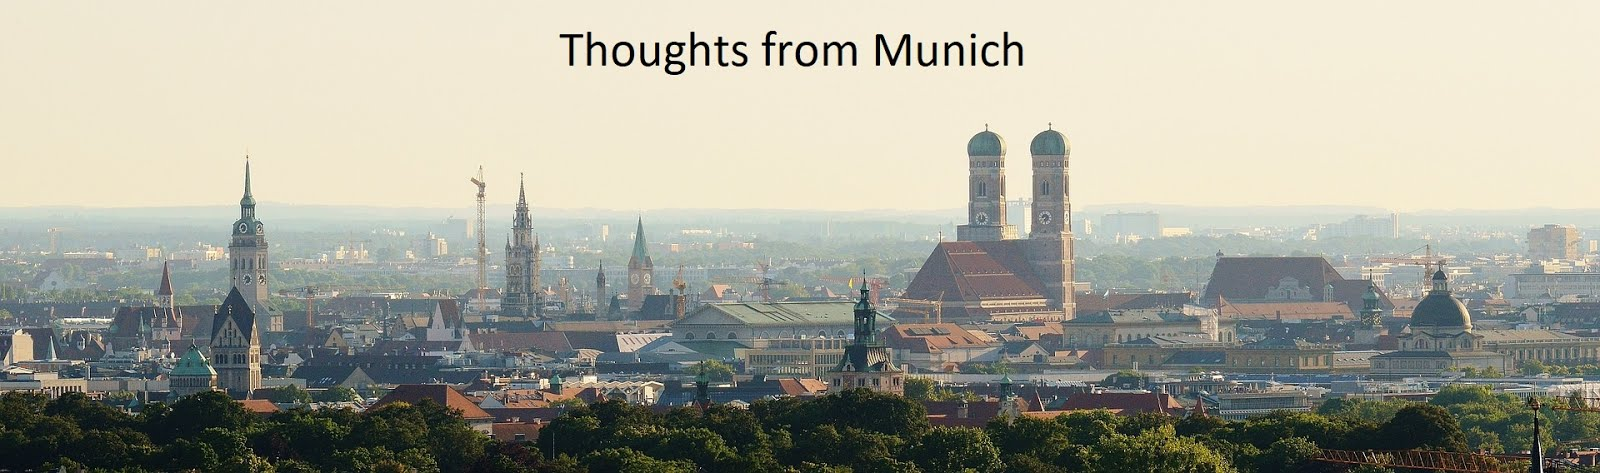 Thoughts from Munich